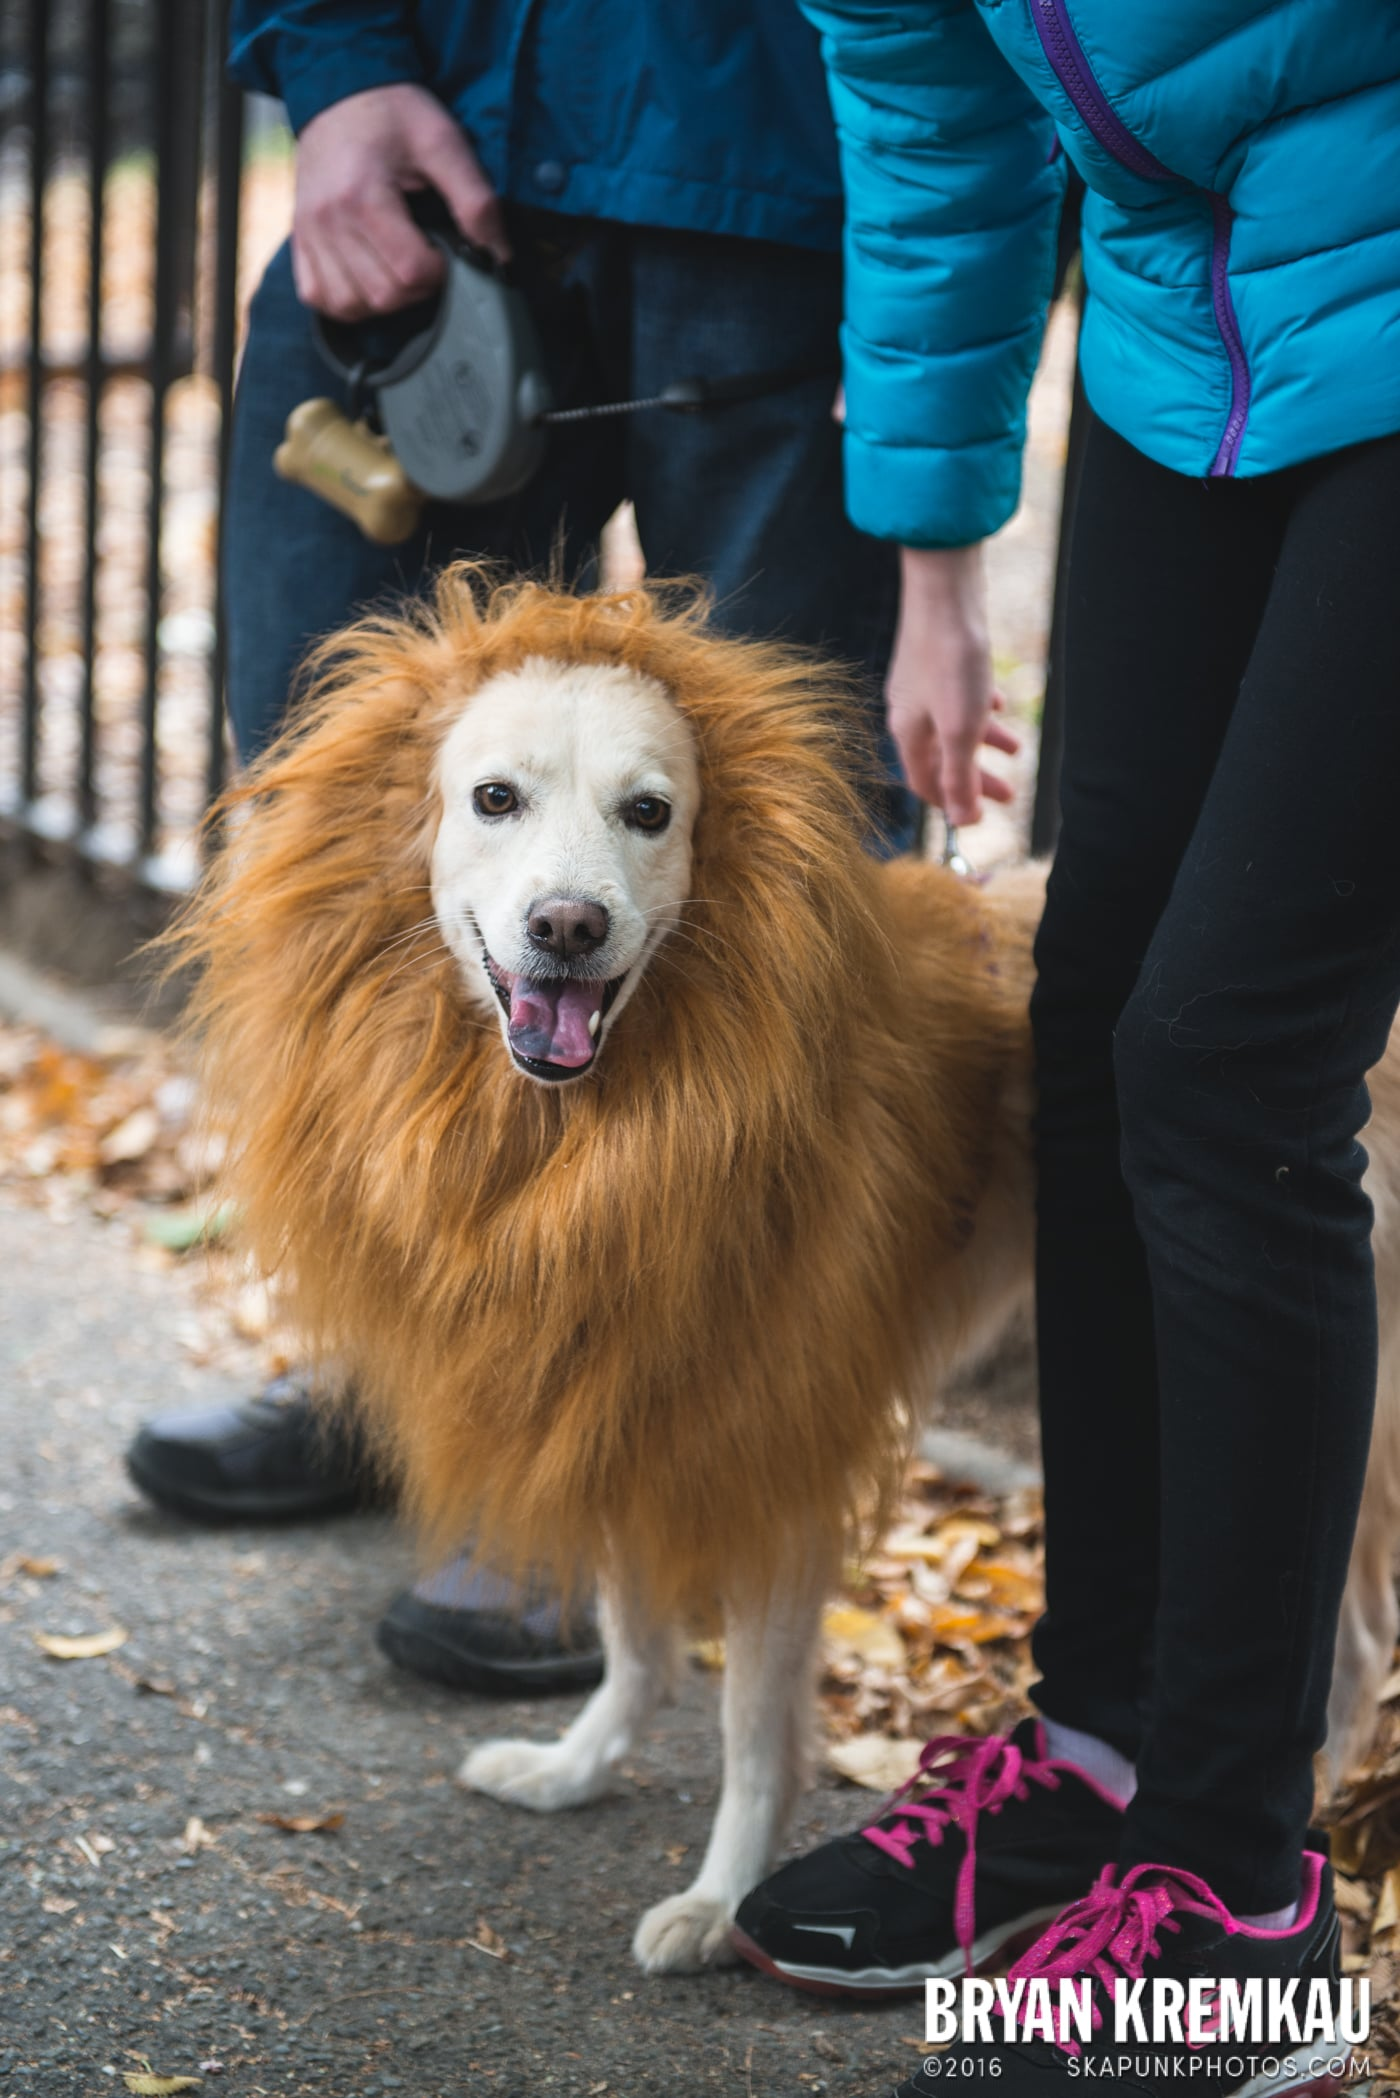 Tompkins Square Halloween Dog Parade 2015 @ Tompkins Square Park, NYC – 10.24.15 (31)